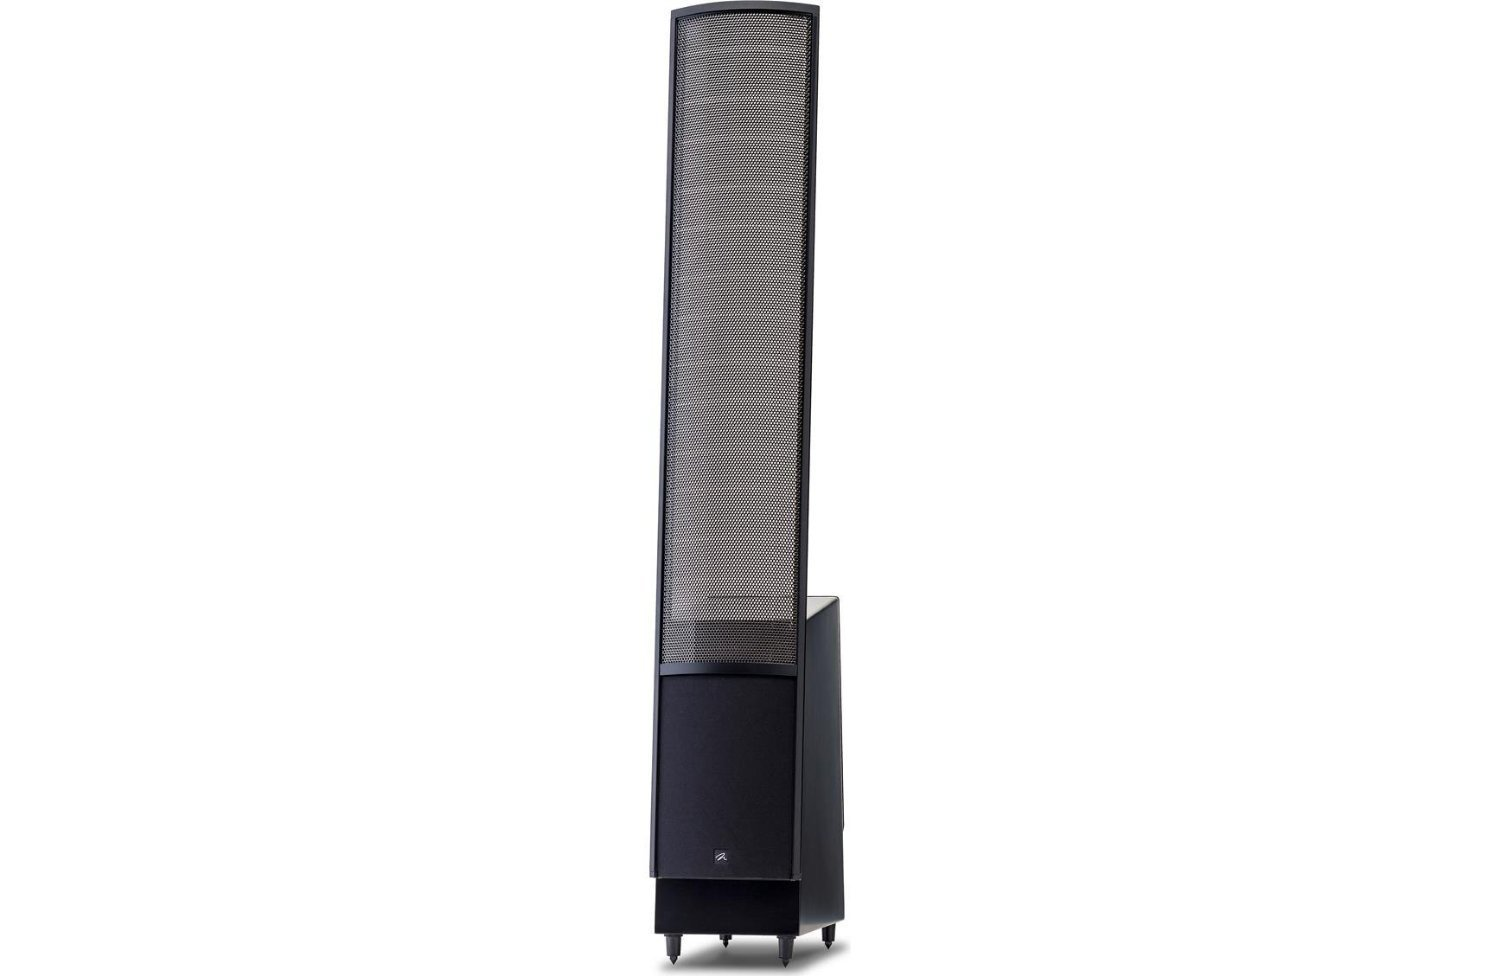 MartinLogan ElectroMotion ESL X Floorstanding Speaker, Satin Black